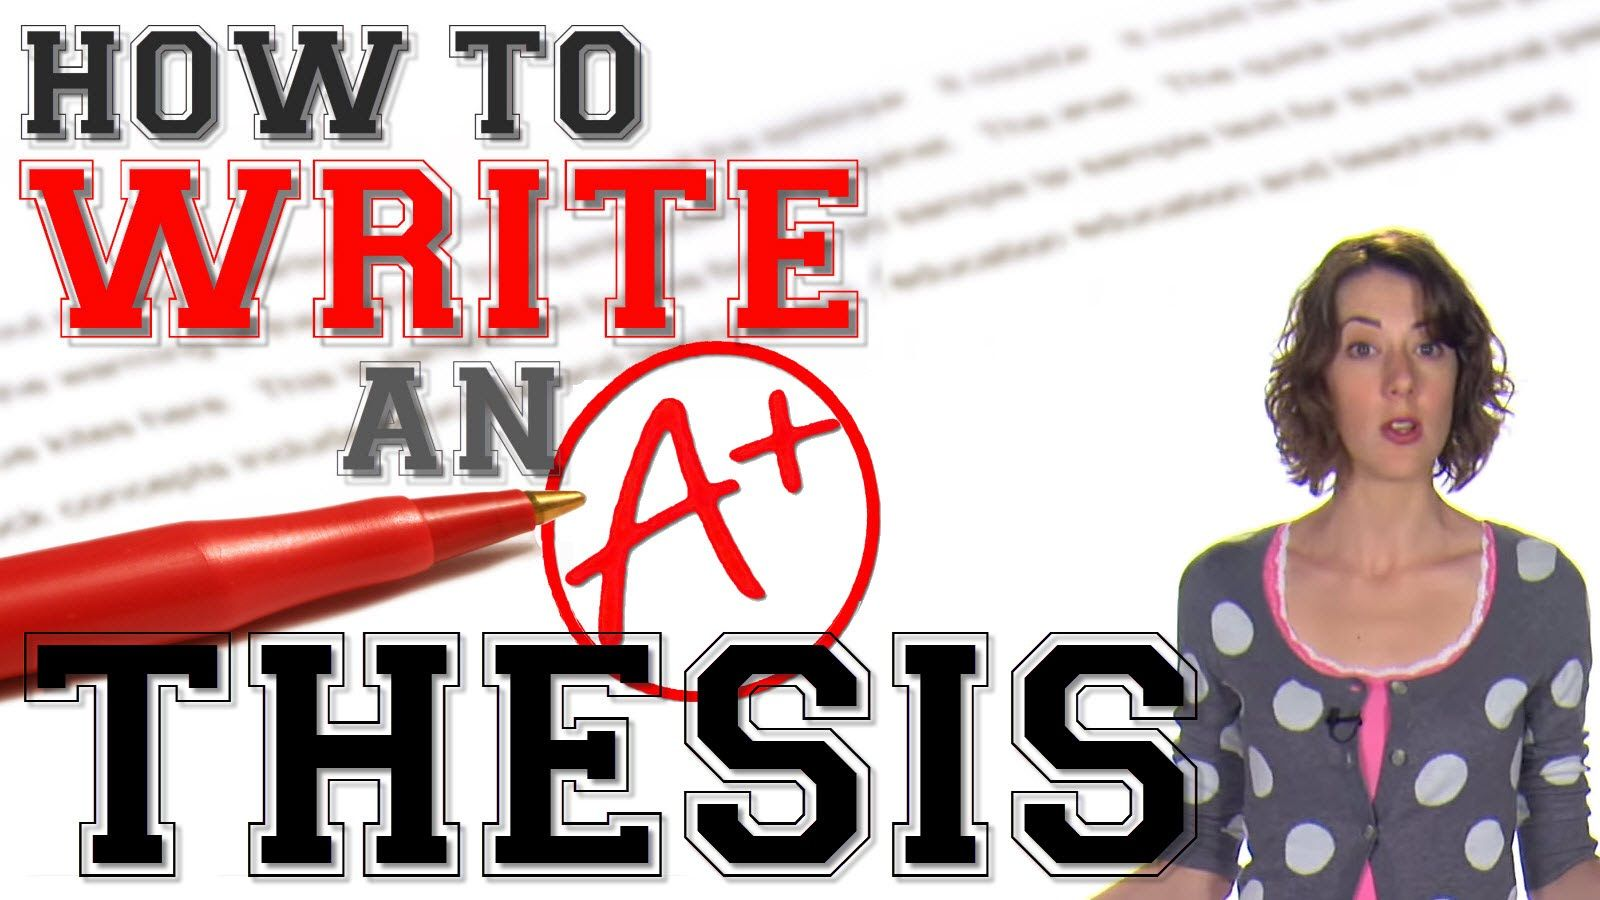 thesis statements four steps to a great essay using an example academic writing